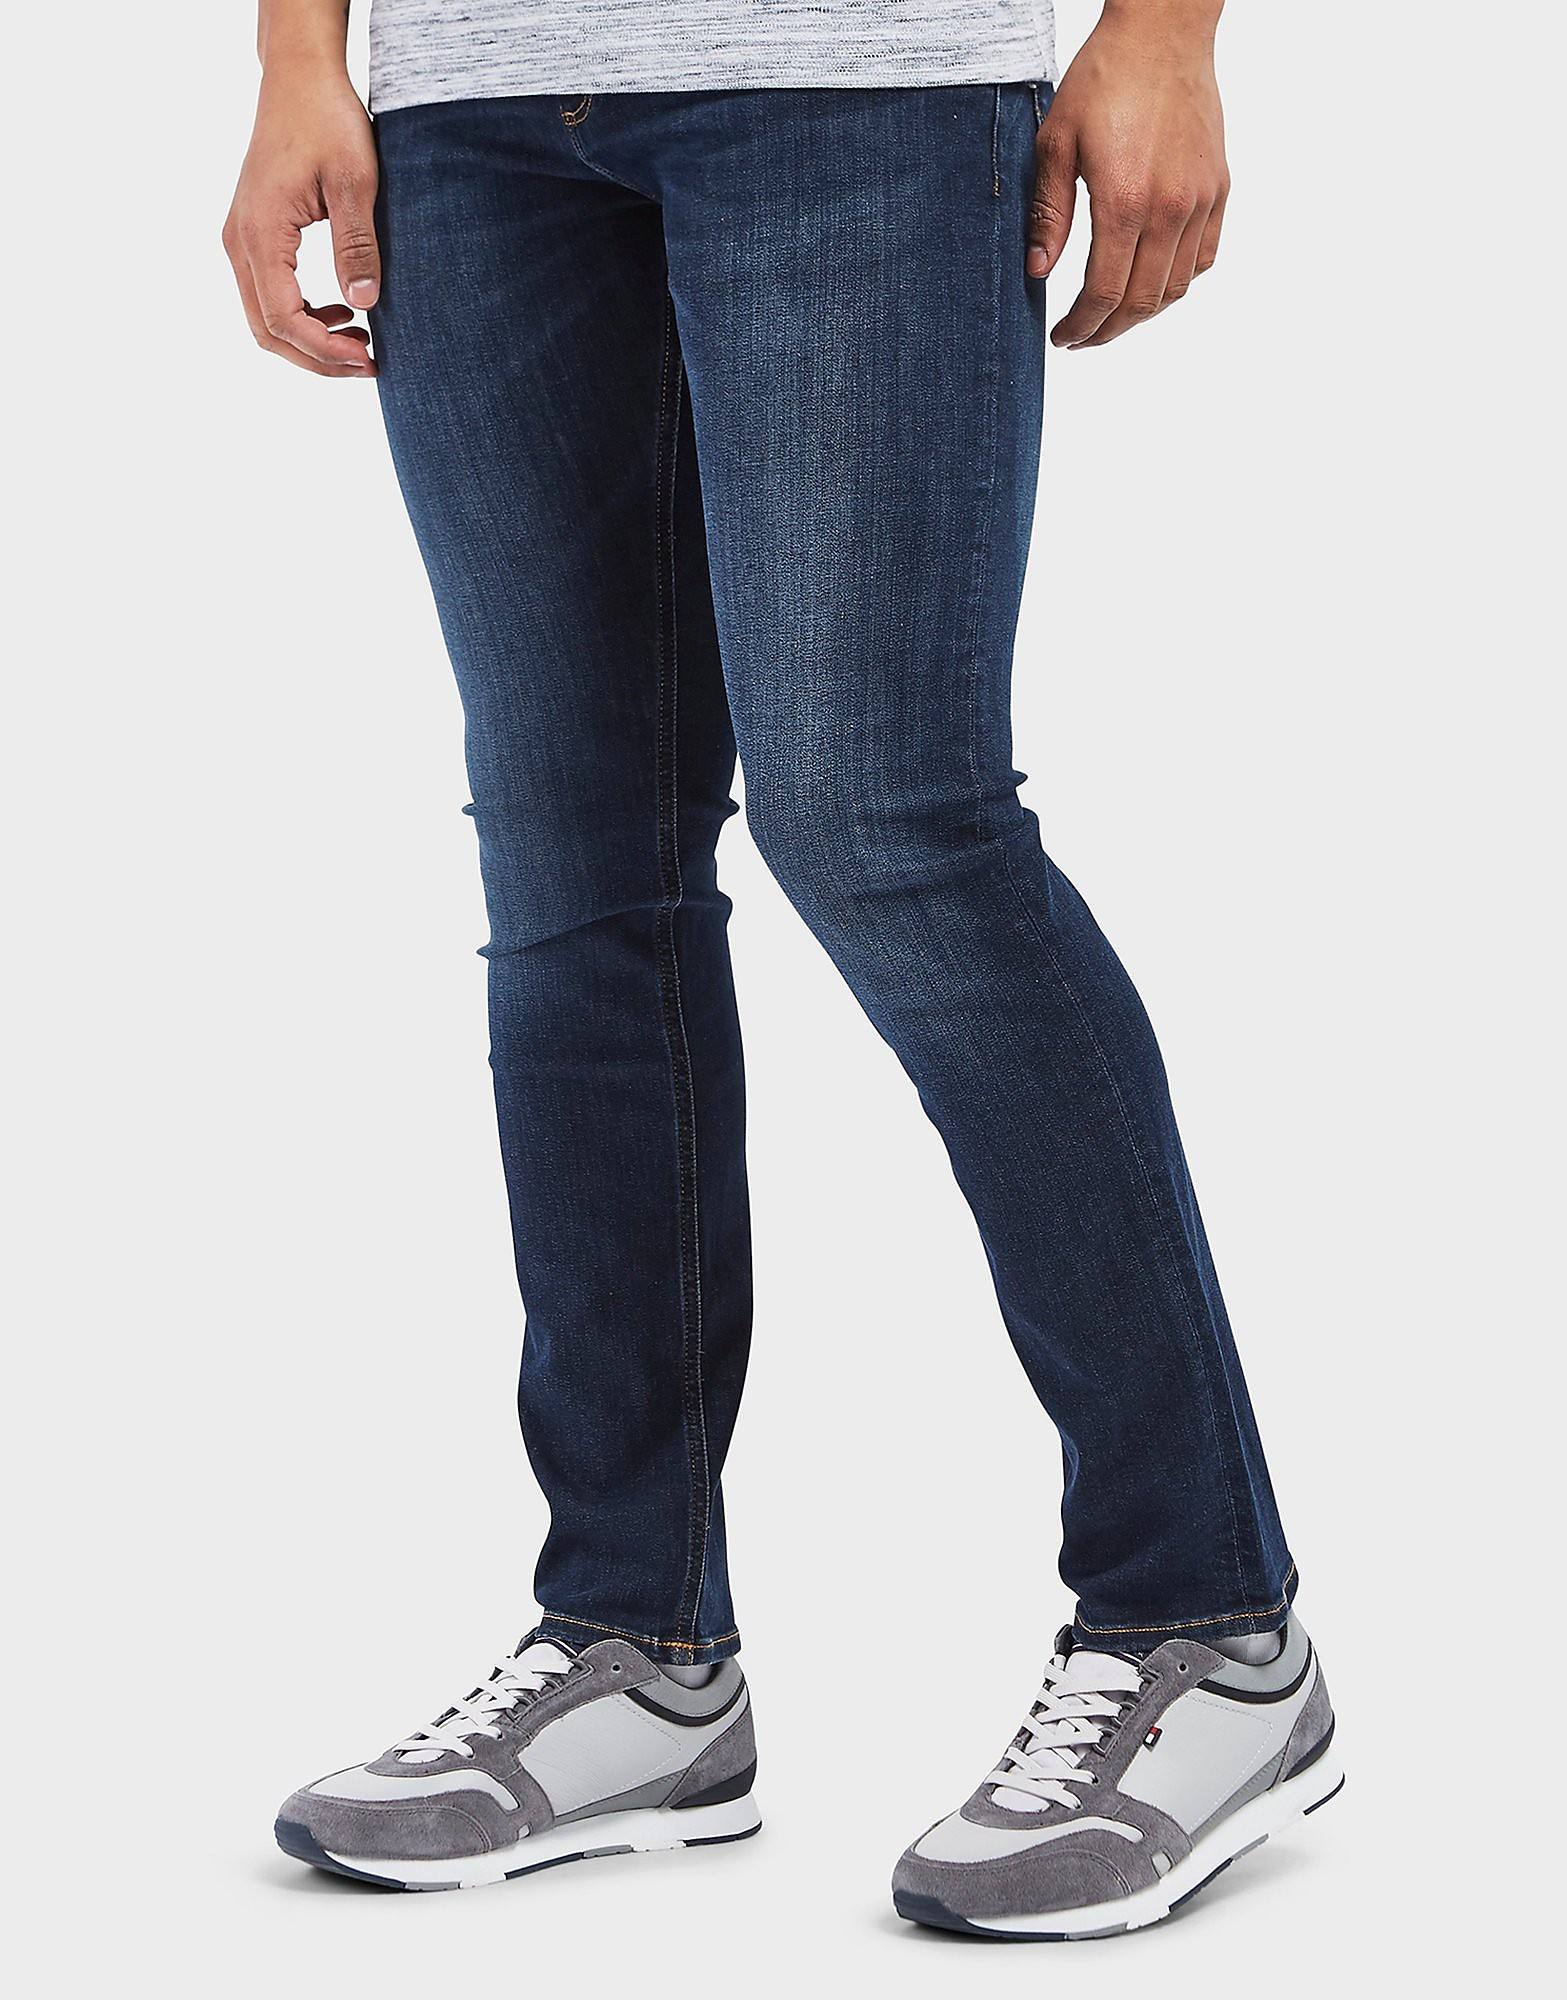 Tommy Hilfiger Dynamic Stretch Slim Jeans